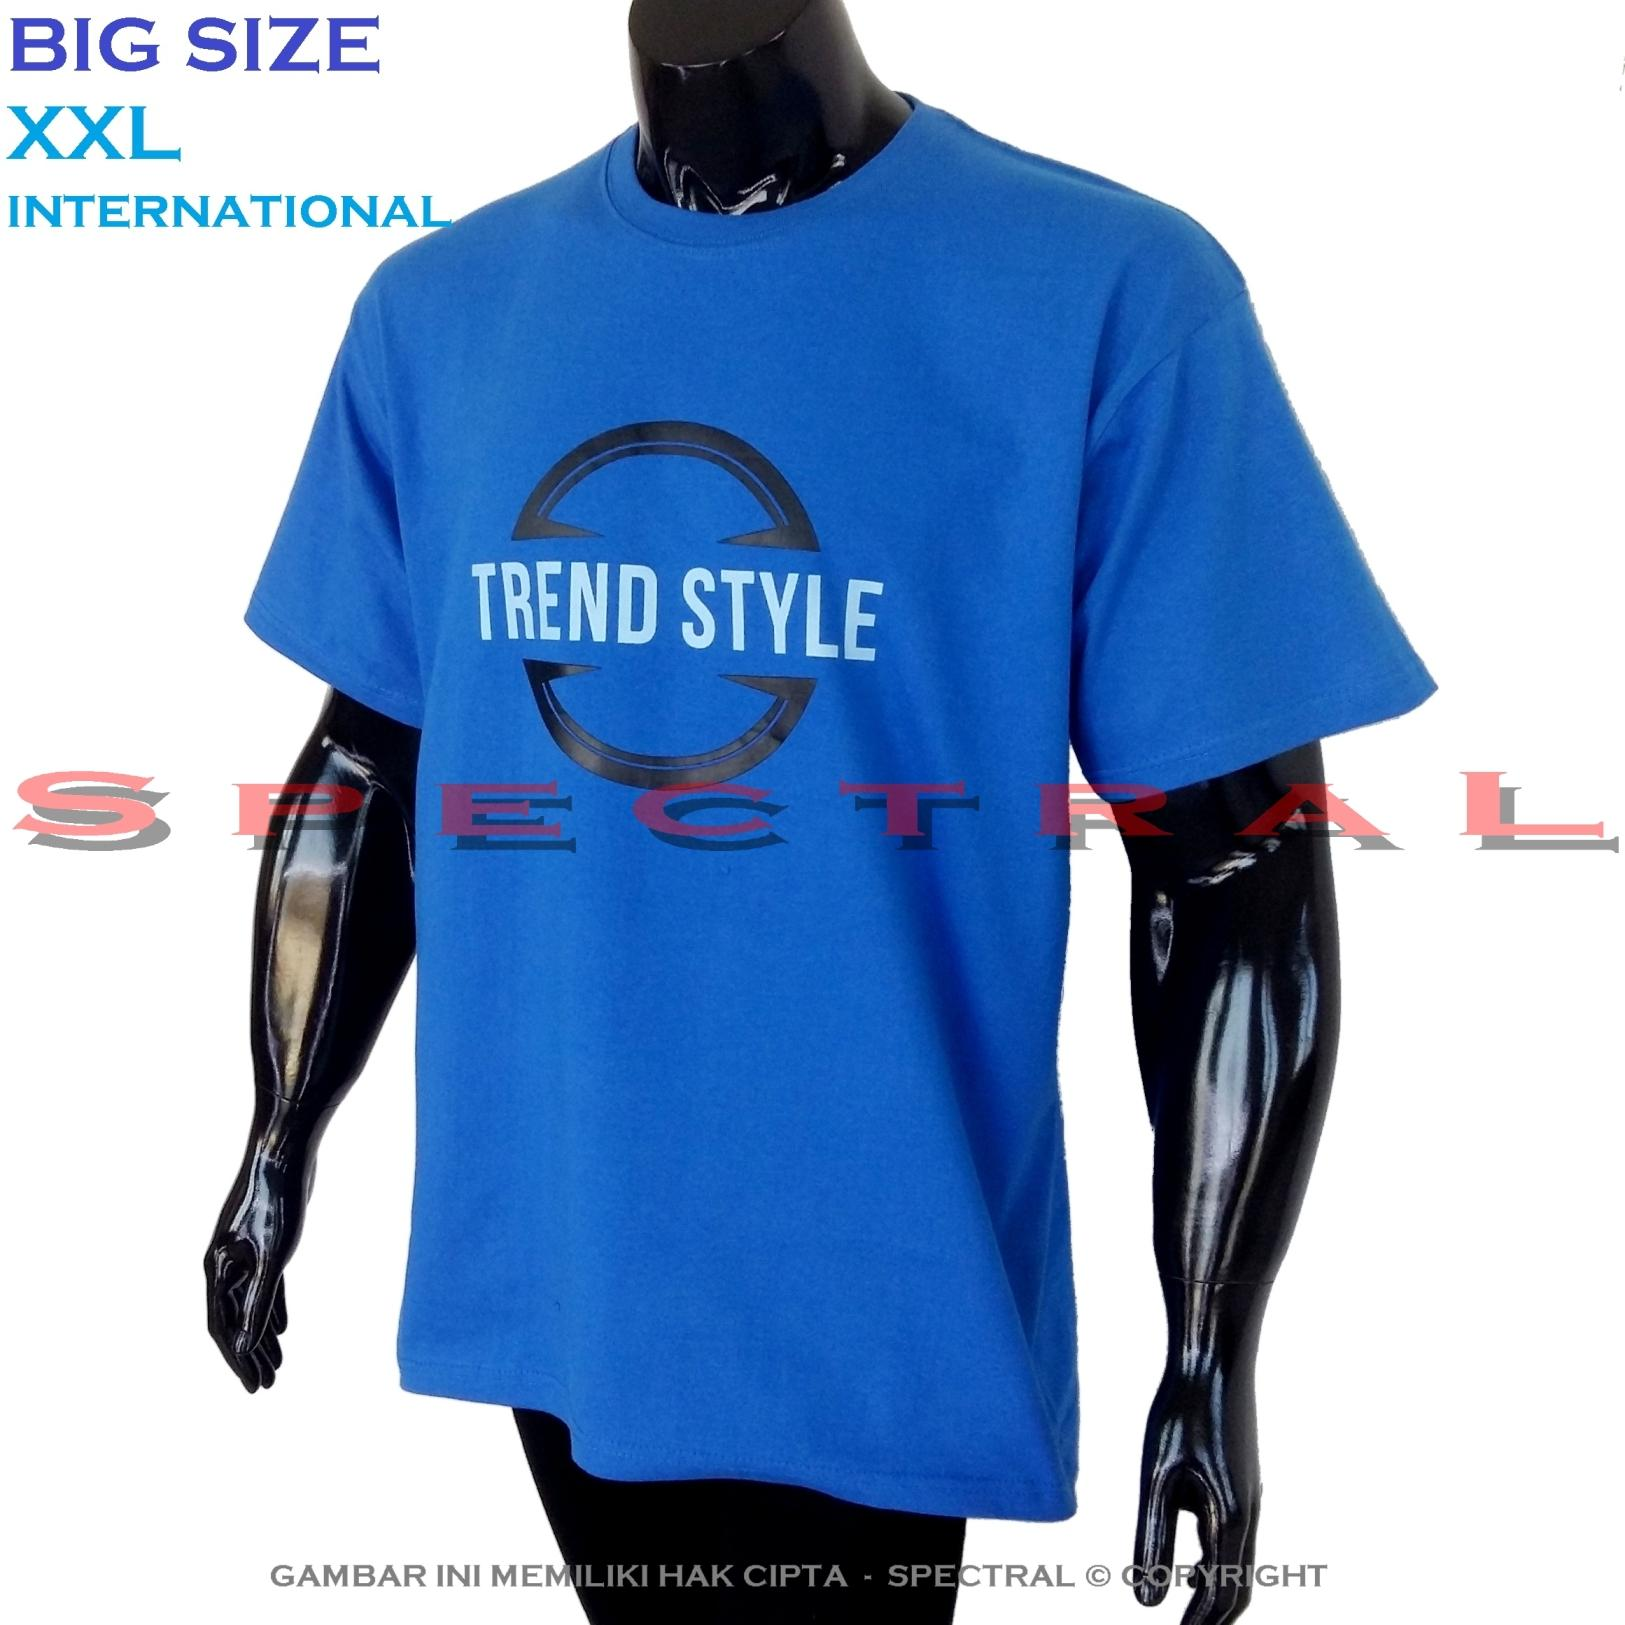 Spectral – BIG SIZE XXL INTERNATIONAL Bapak Orang Tua Gemuk 100% Soft Cotton Combed Kaos Distro Jumbo BIGSIZE T-Shirt Fashion Ukuran Besar Polos Celana Atasan Pria Wanita Katun Gendut Lengan Simple Sport Casual 2L 2XL Baju Cowo Cewe Pakaian Terbaru TREND